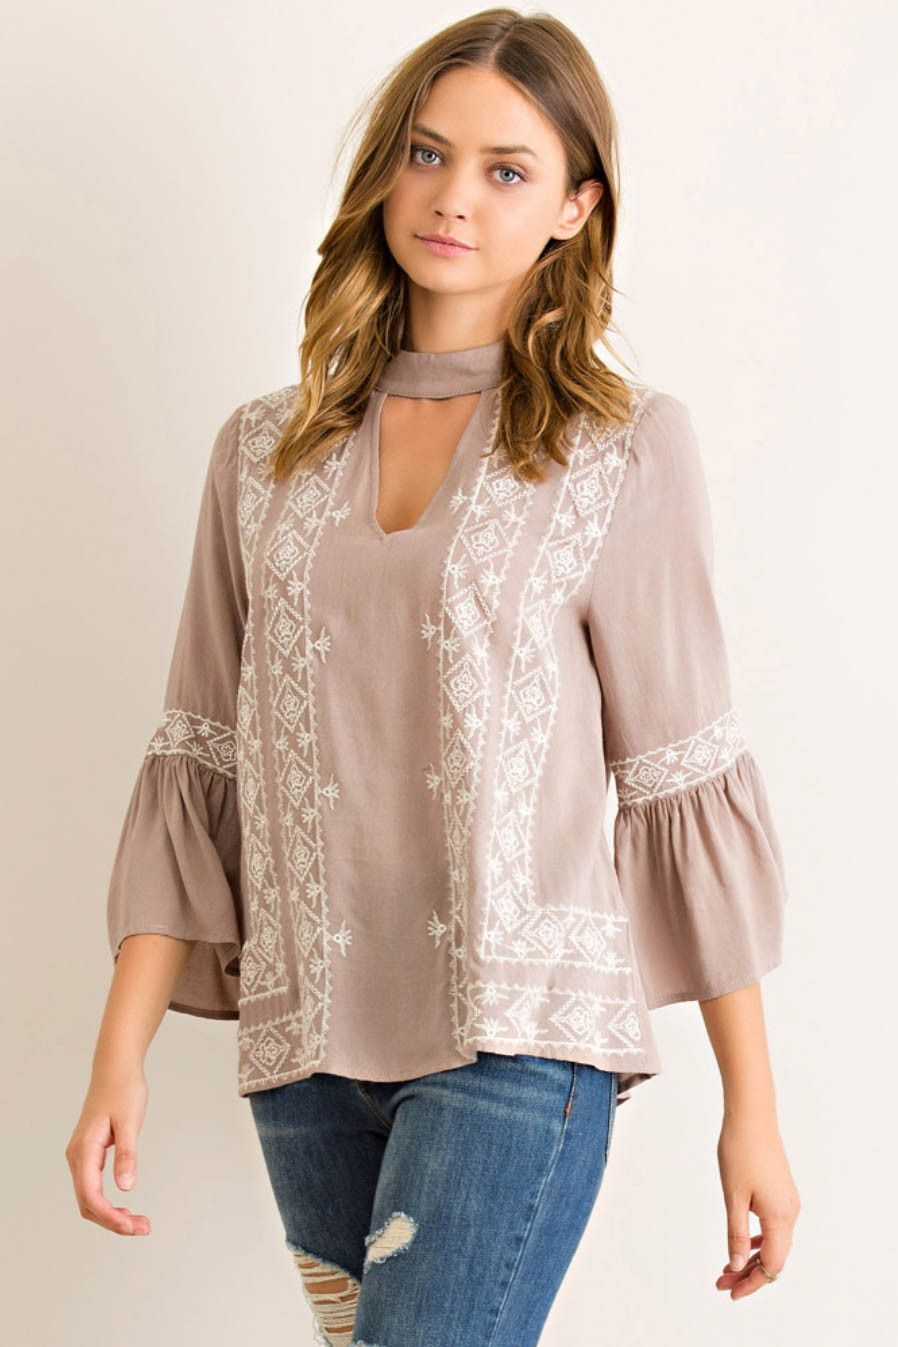 e16134382e7 Embroidered Top with Circular Flounce Sleeves